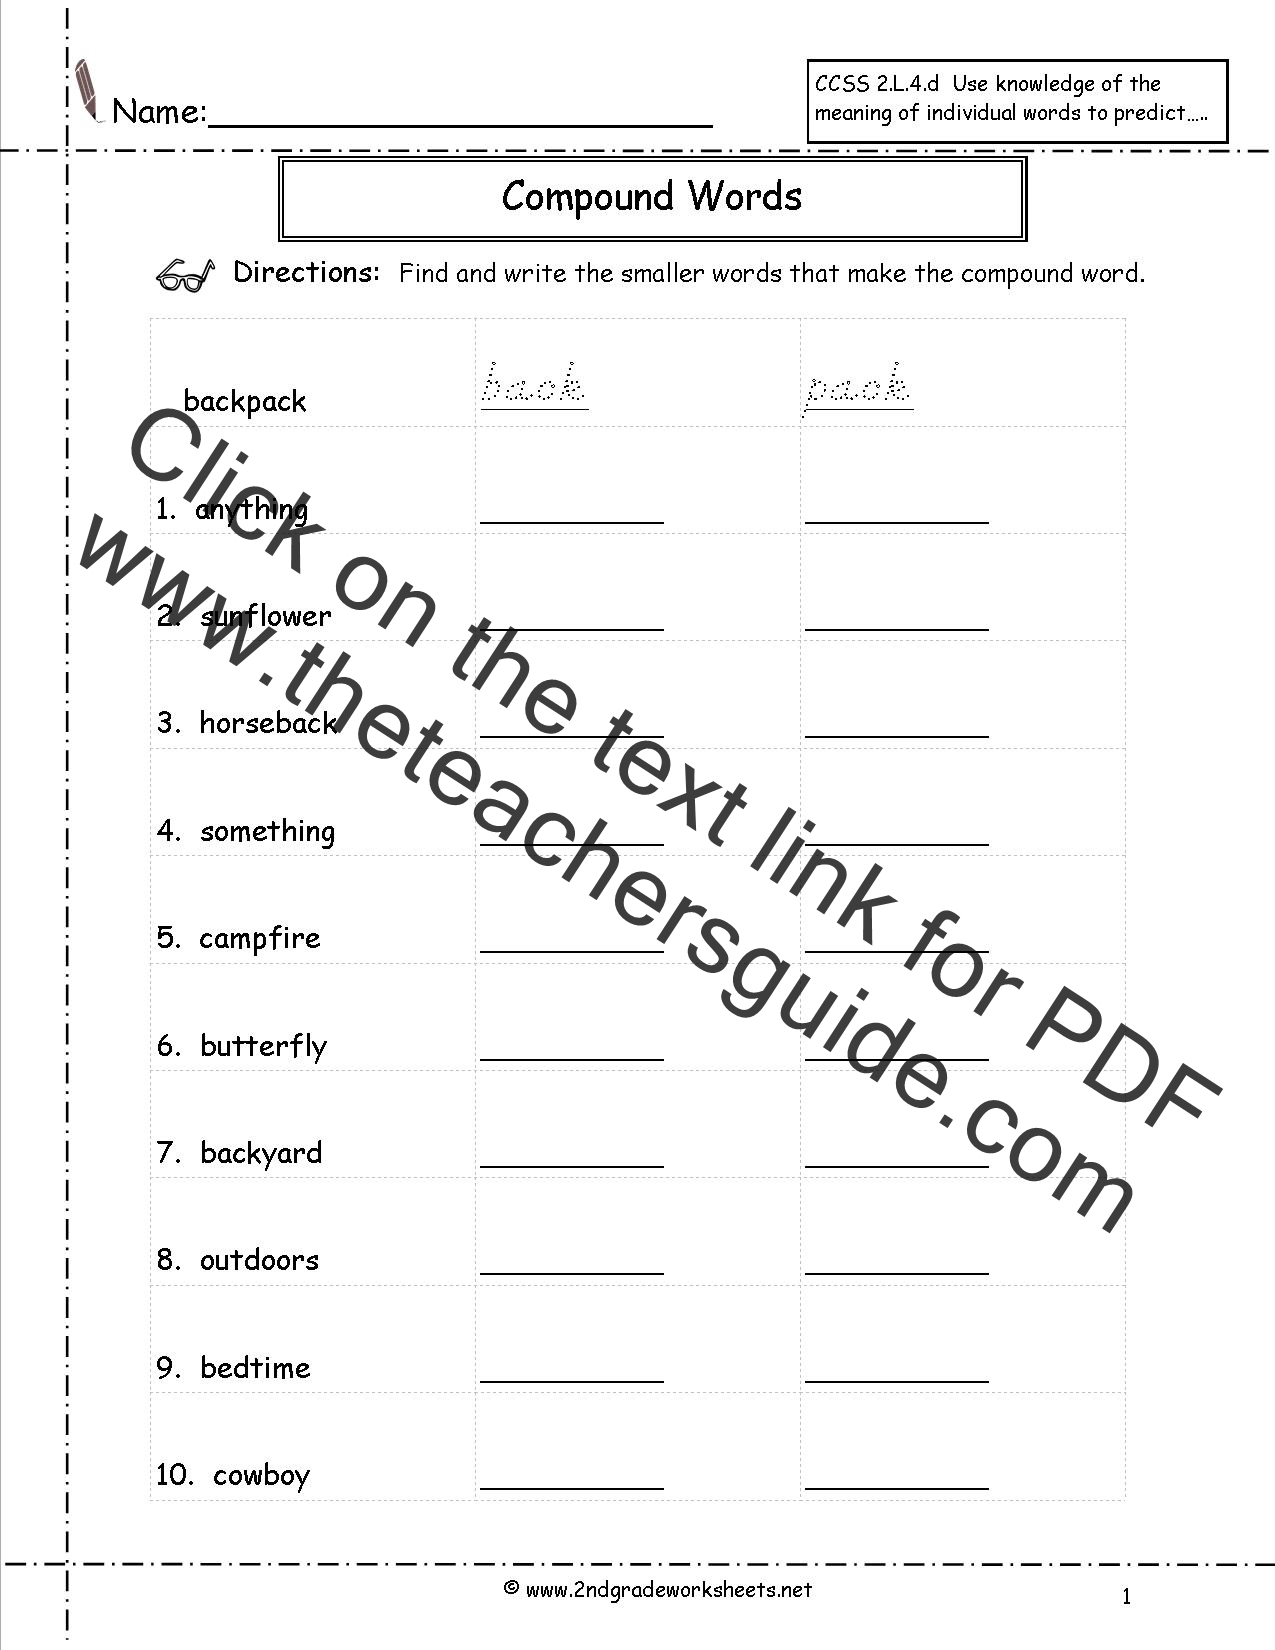 Worksheets Printable 2nd Grade Worksheets free languagegrammar worksheets and printouts compound words worksheets